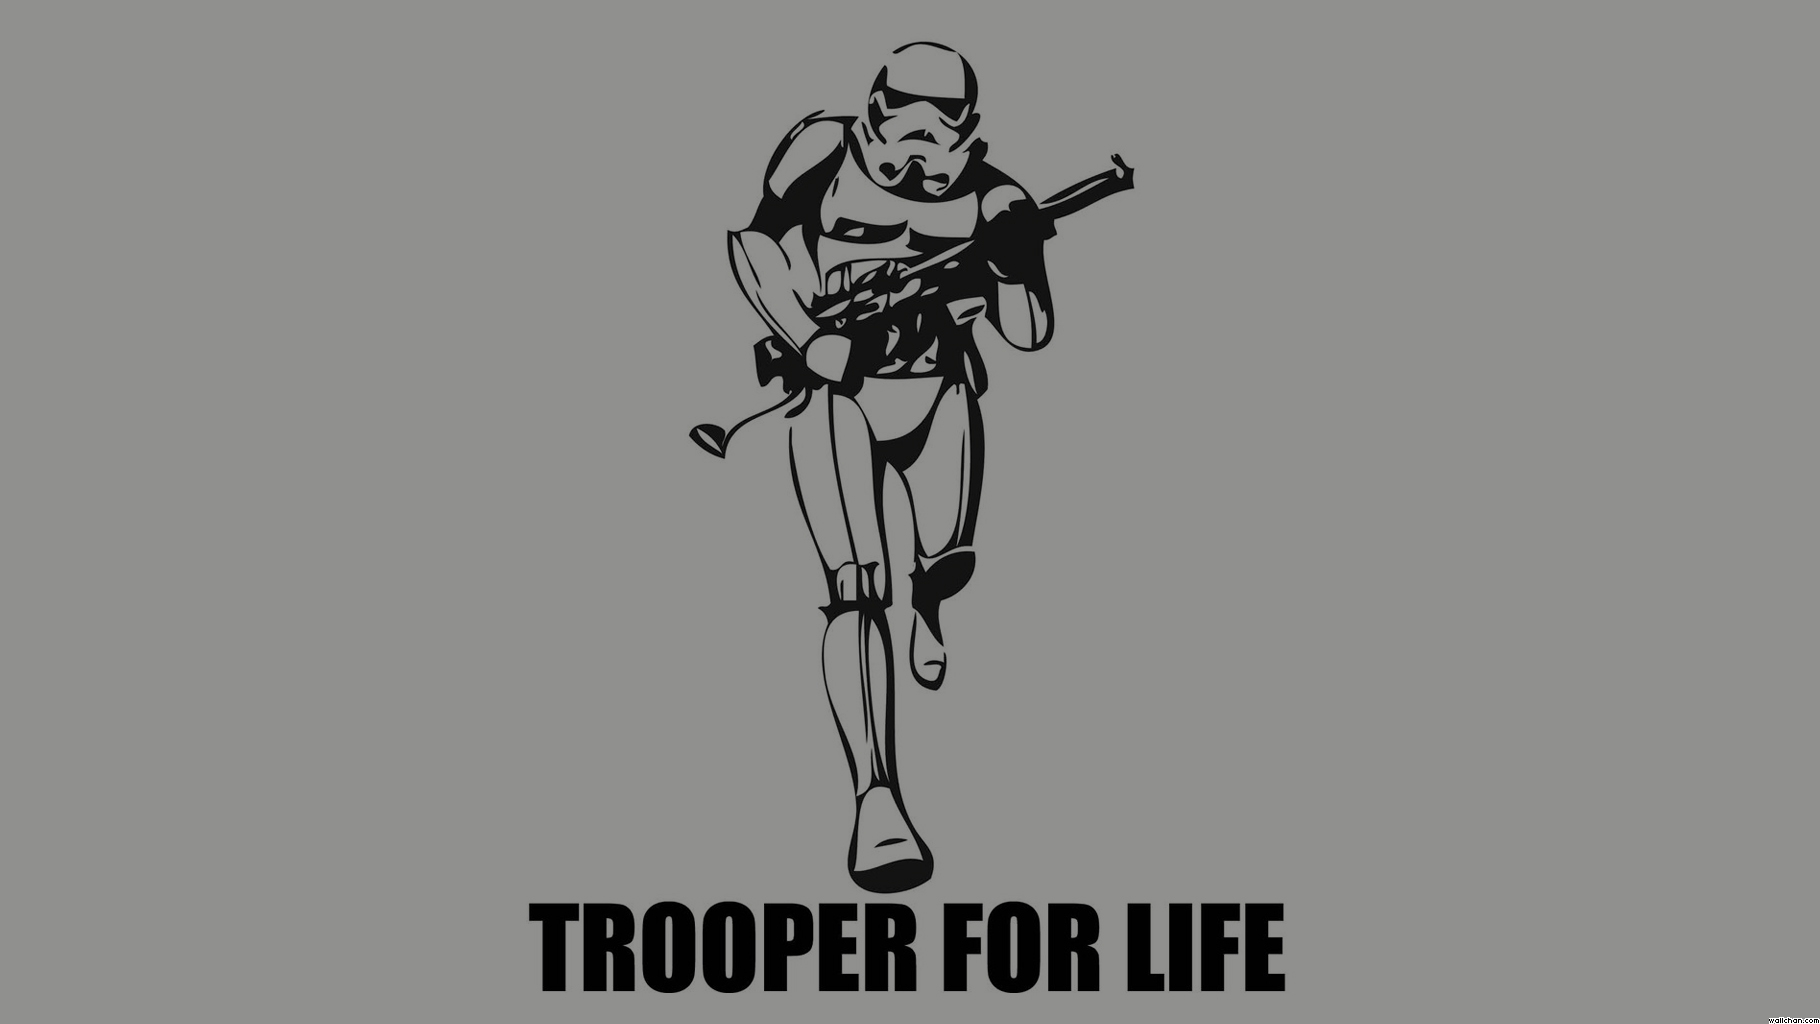 star wars stormtrooper funny - photo #24